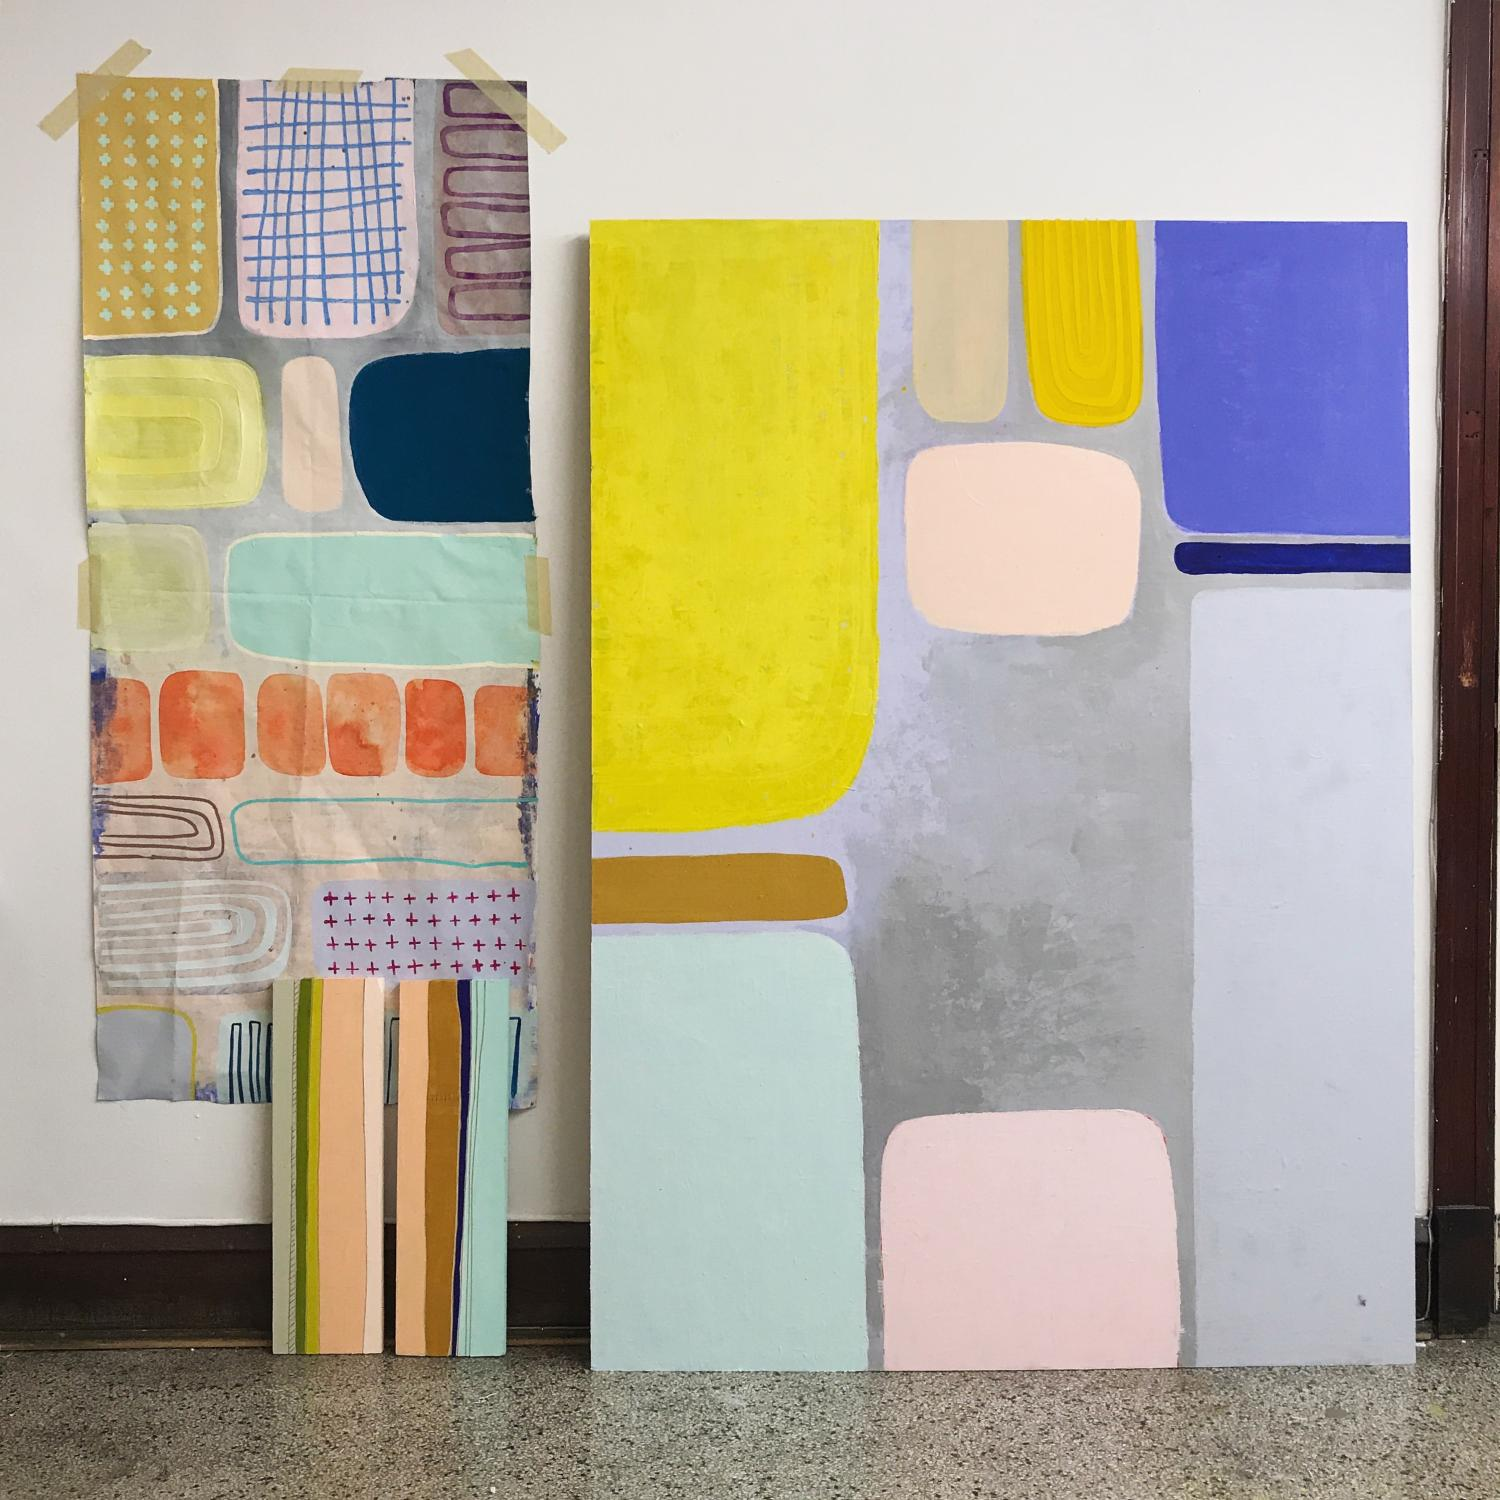 A selection of paintings by local artist Kelly Hieronymus, who will lead this month's creativity workshop on Patterns and Forms. Image courtesy of the artist.